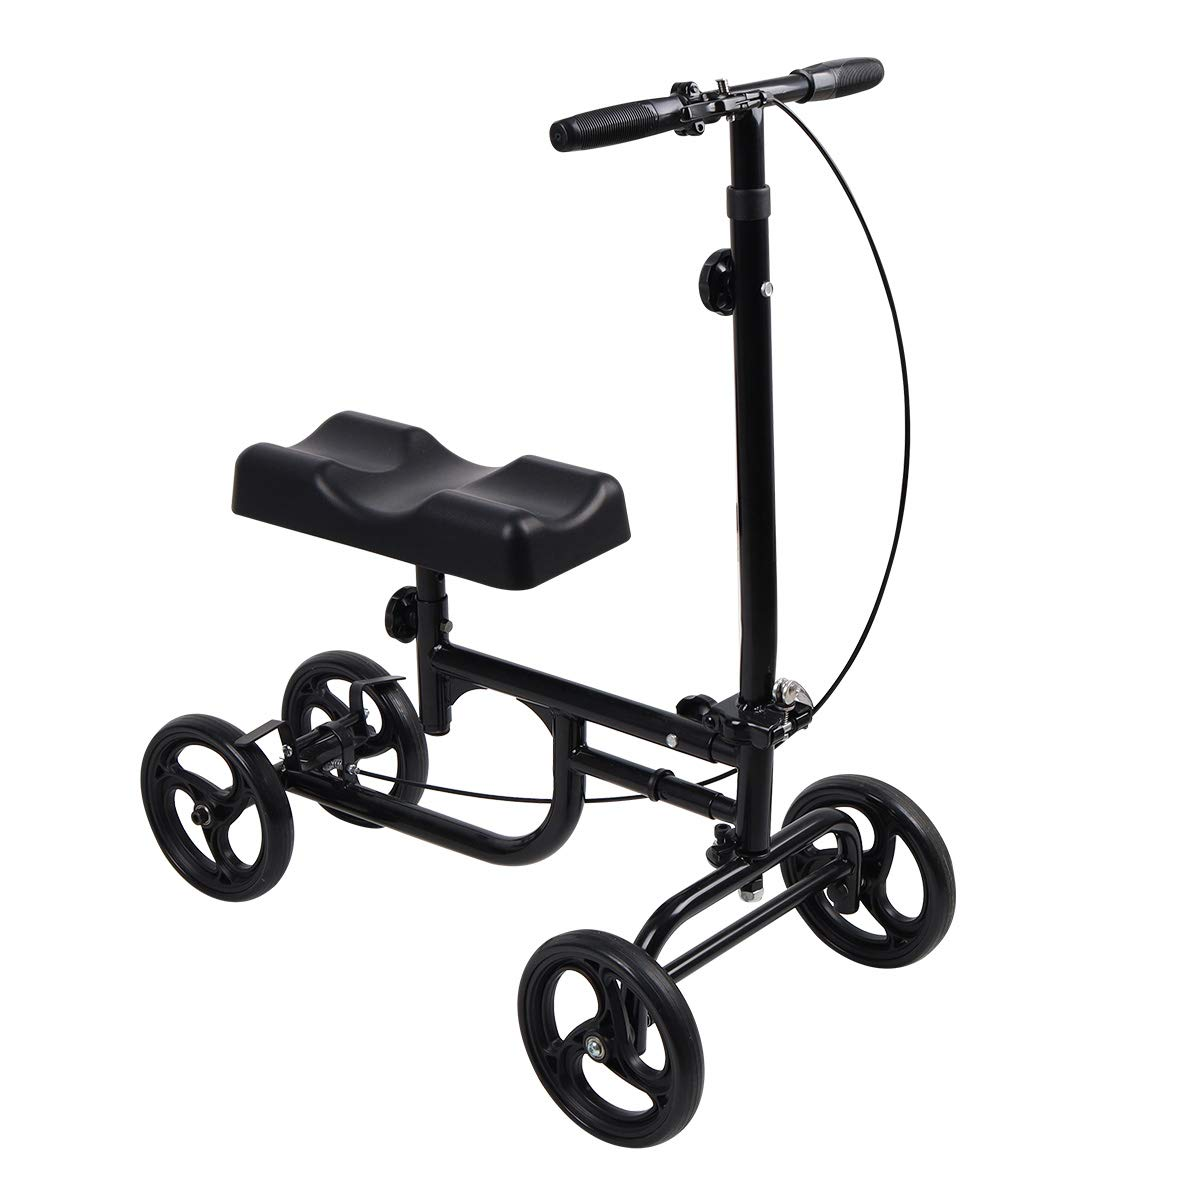 Give Me Economy Knee Scooter Steerable Knee Walker Crutch Alternative with Thick Knee Pad in Black by Give Me